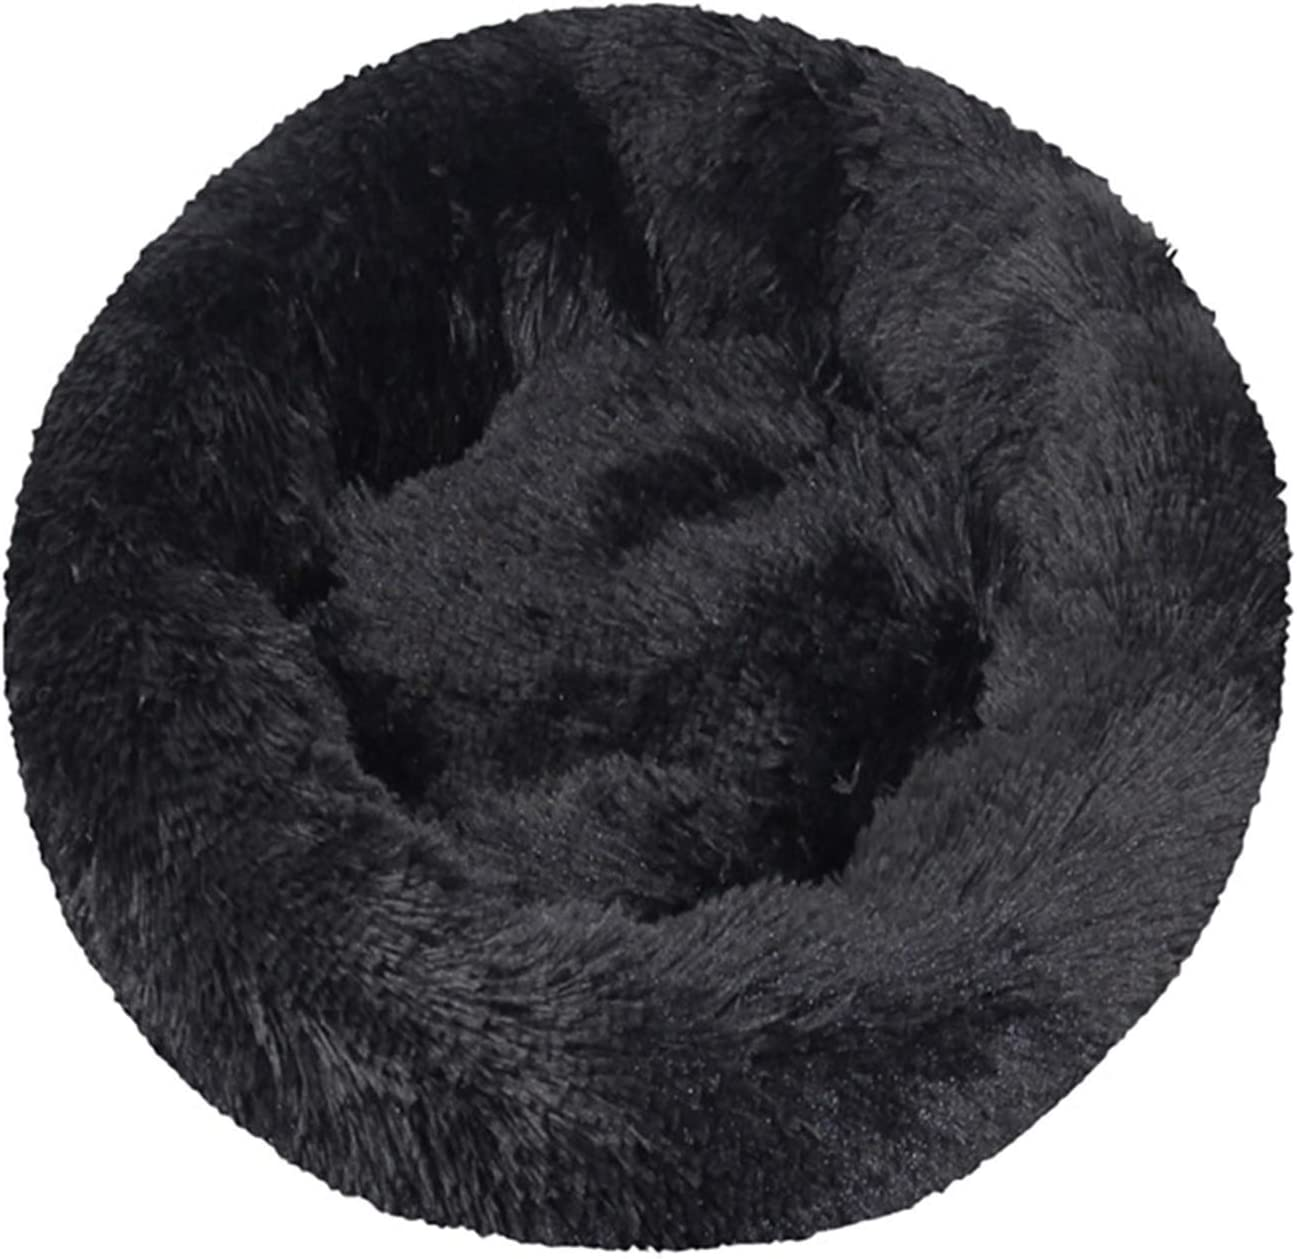 PXBHD Long Plush Dog Bed Cushion Round House Max Directly managed store 59% OFF Pet Dogs Large